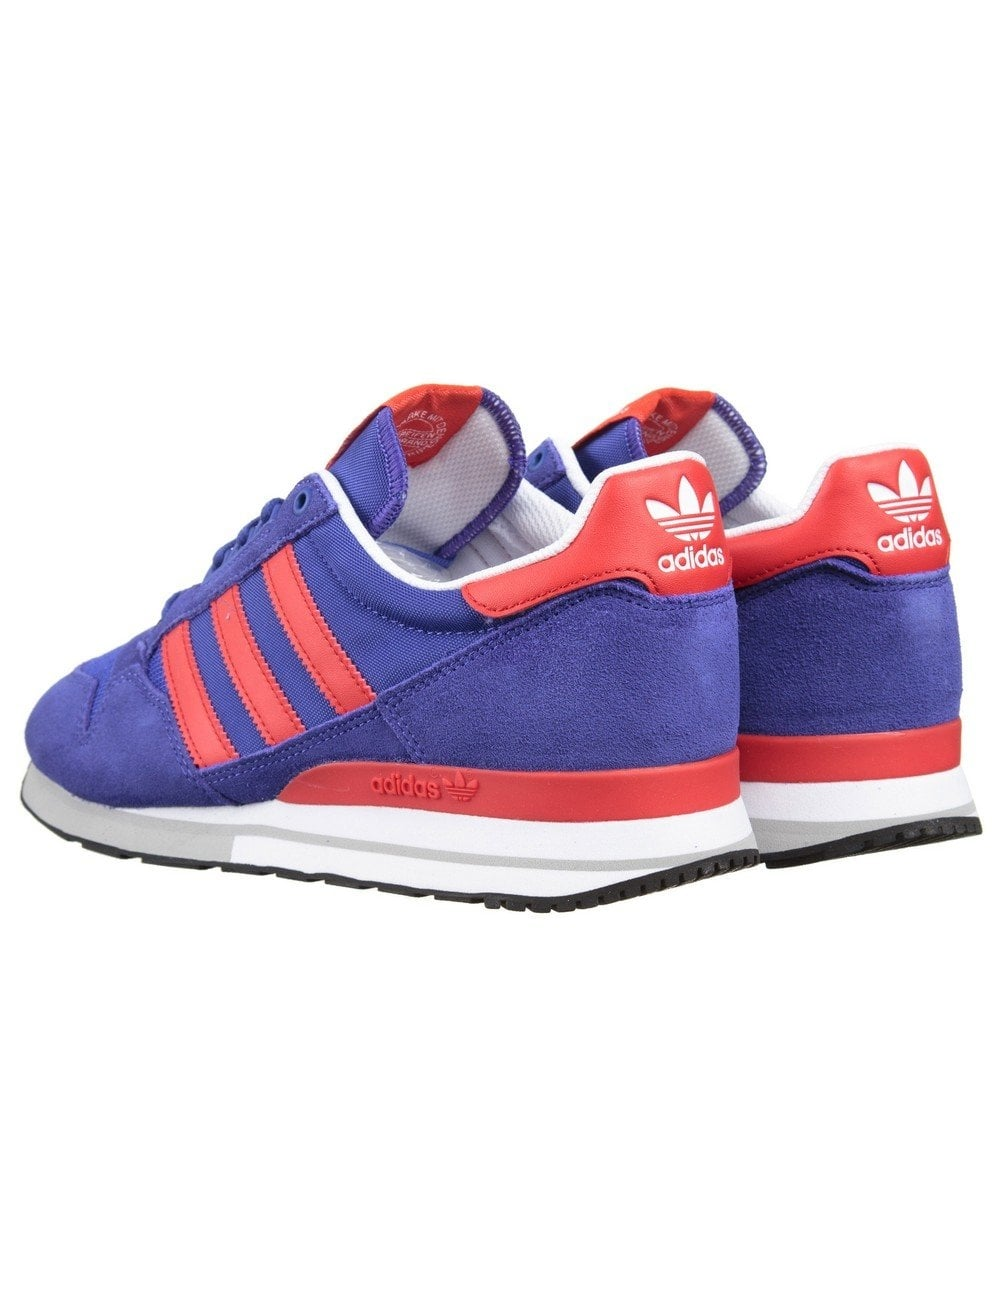 63b740a2ff88b Adidas Originals ZX 500 OG Shoes - Night Flash Red - Footwear from ...